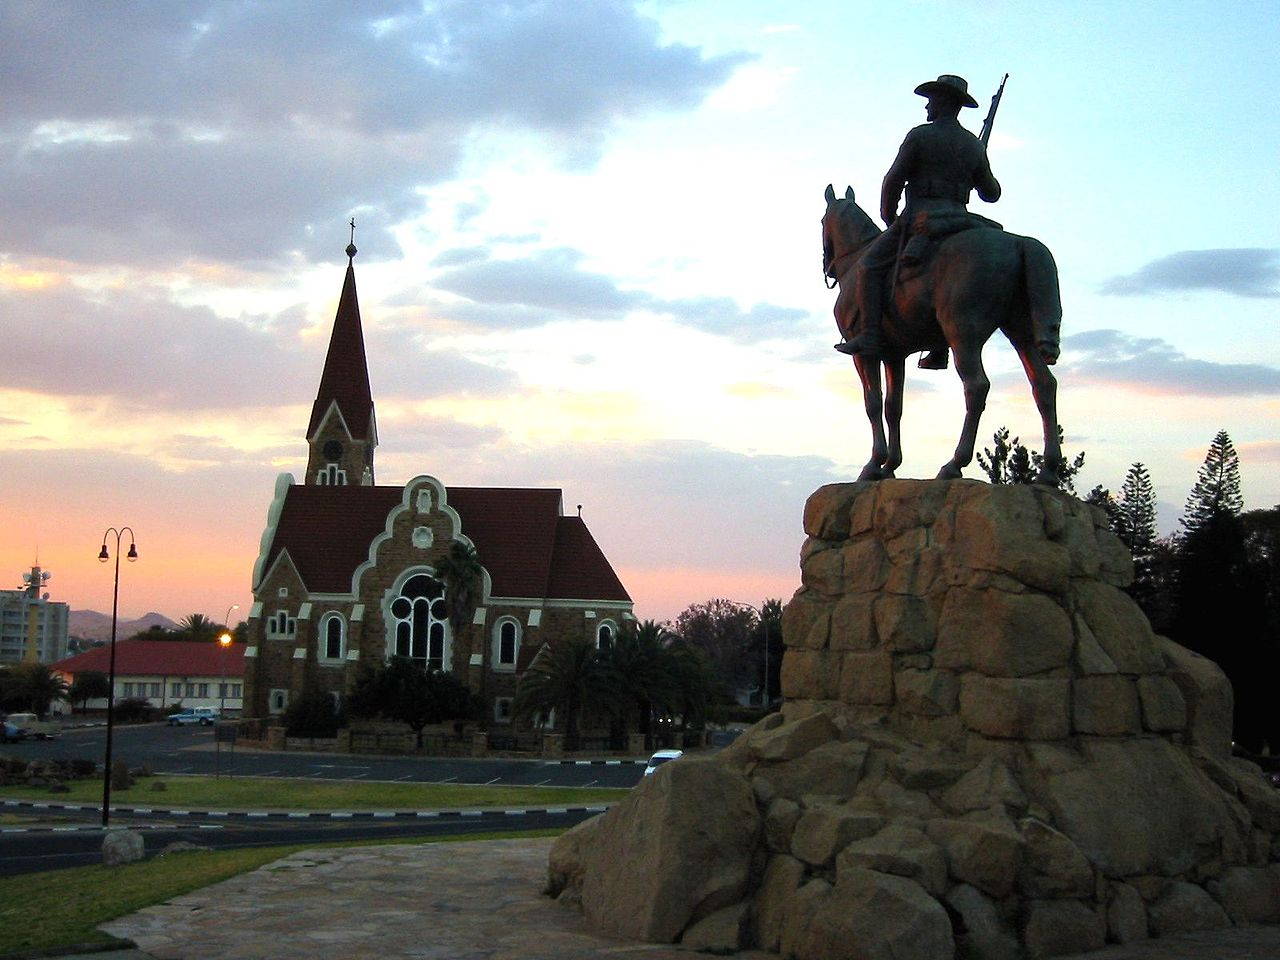 The rieterdenkmal, a statue representing the Germans who committed genocide in 1904, still overlooks the Namibian capital of Windhoek